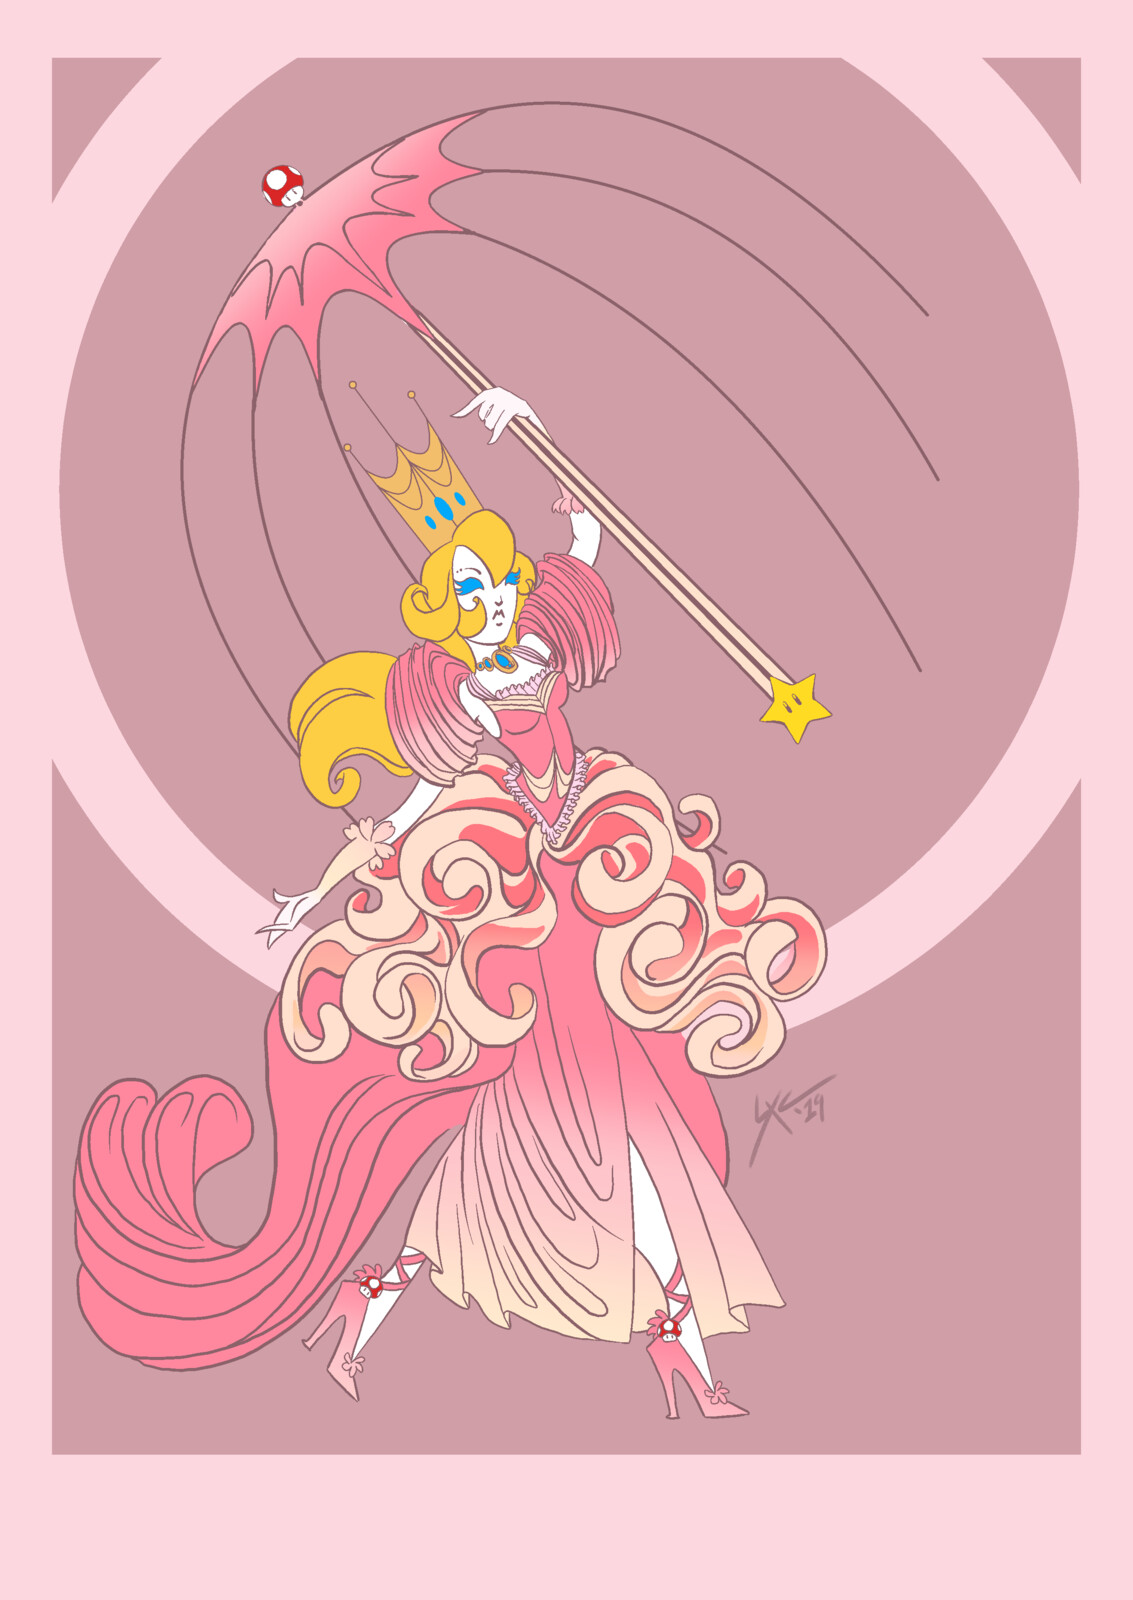 Fan Art: Nintendo Erte - Princess Peach